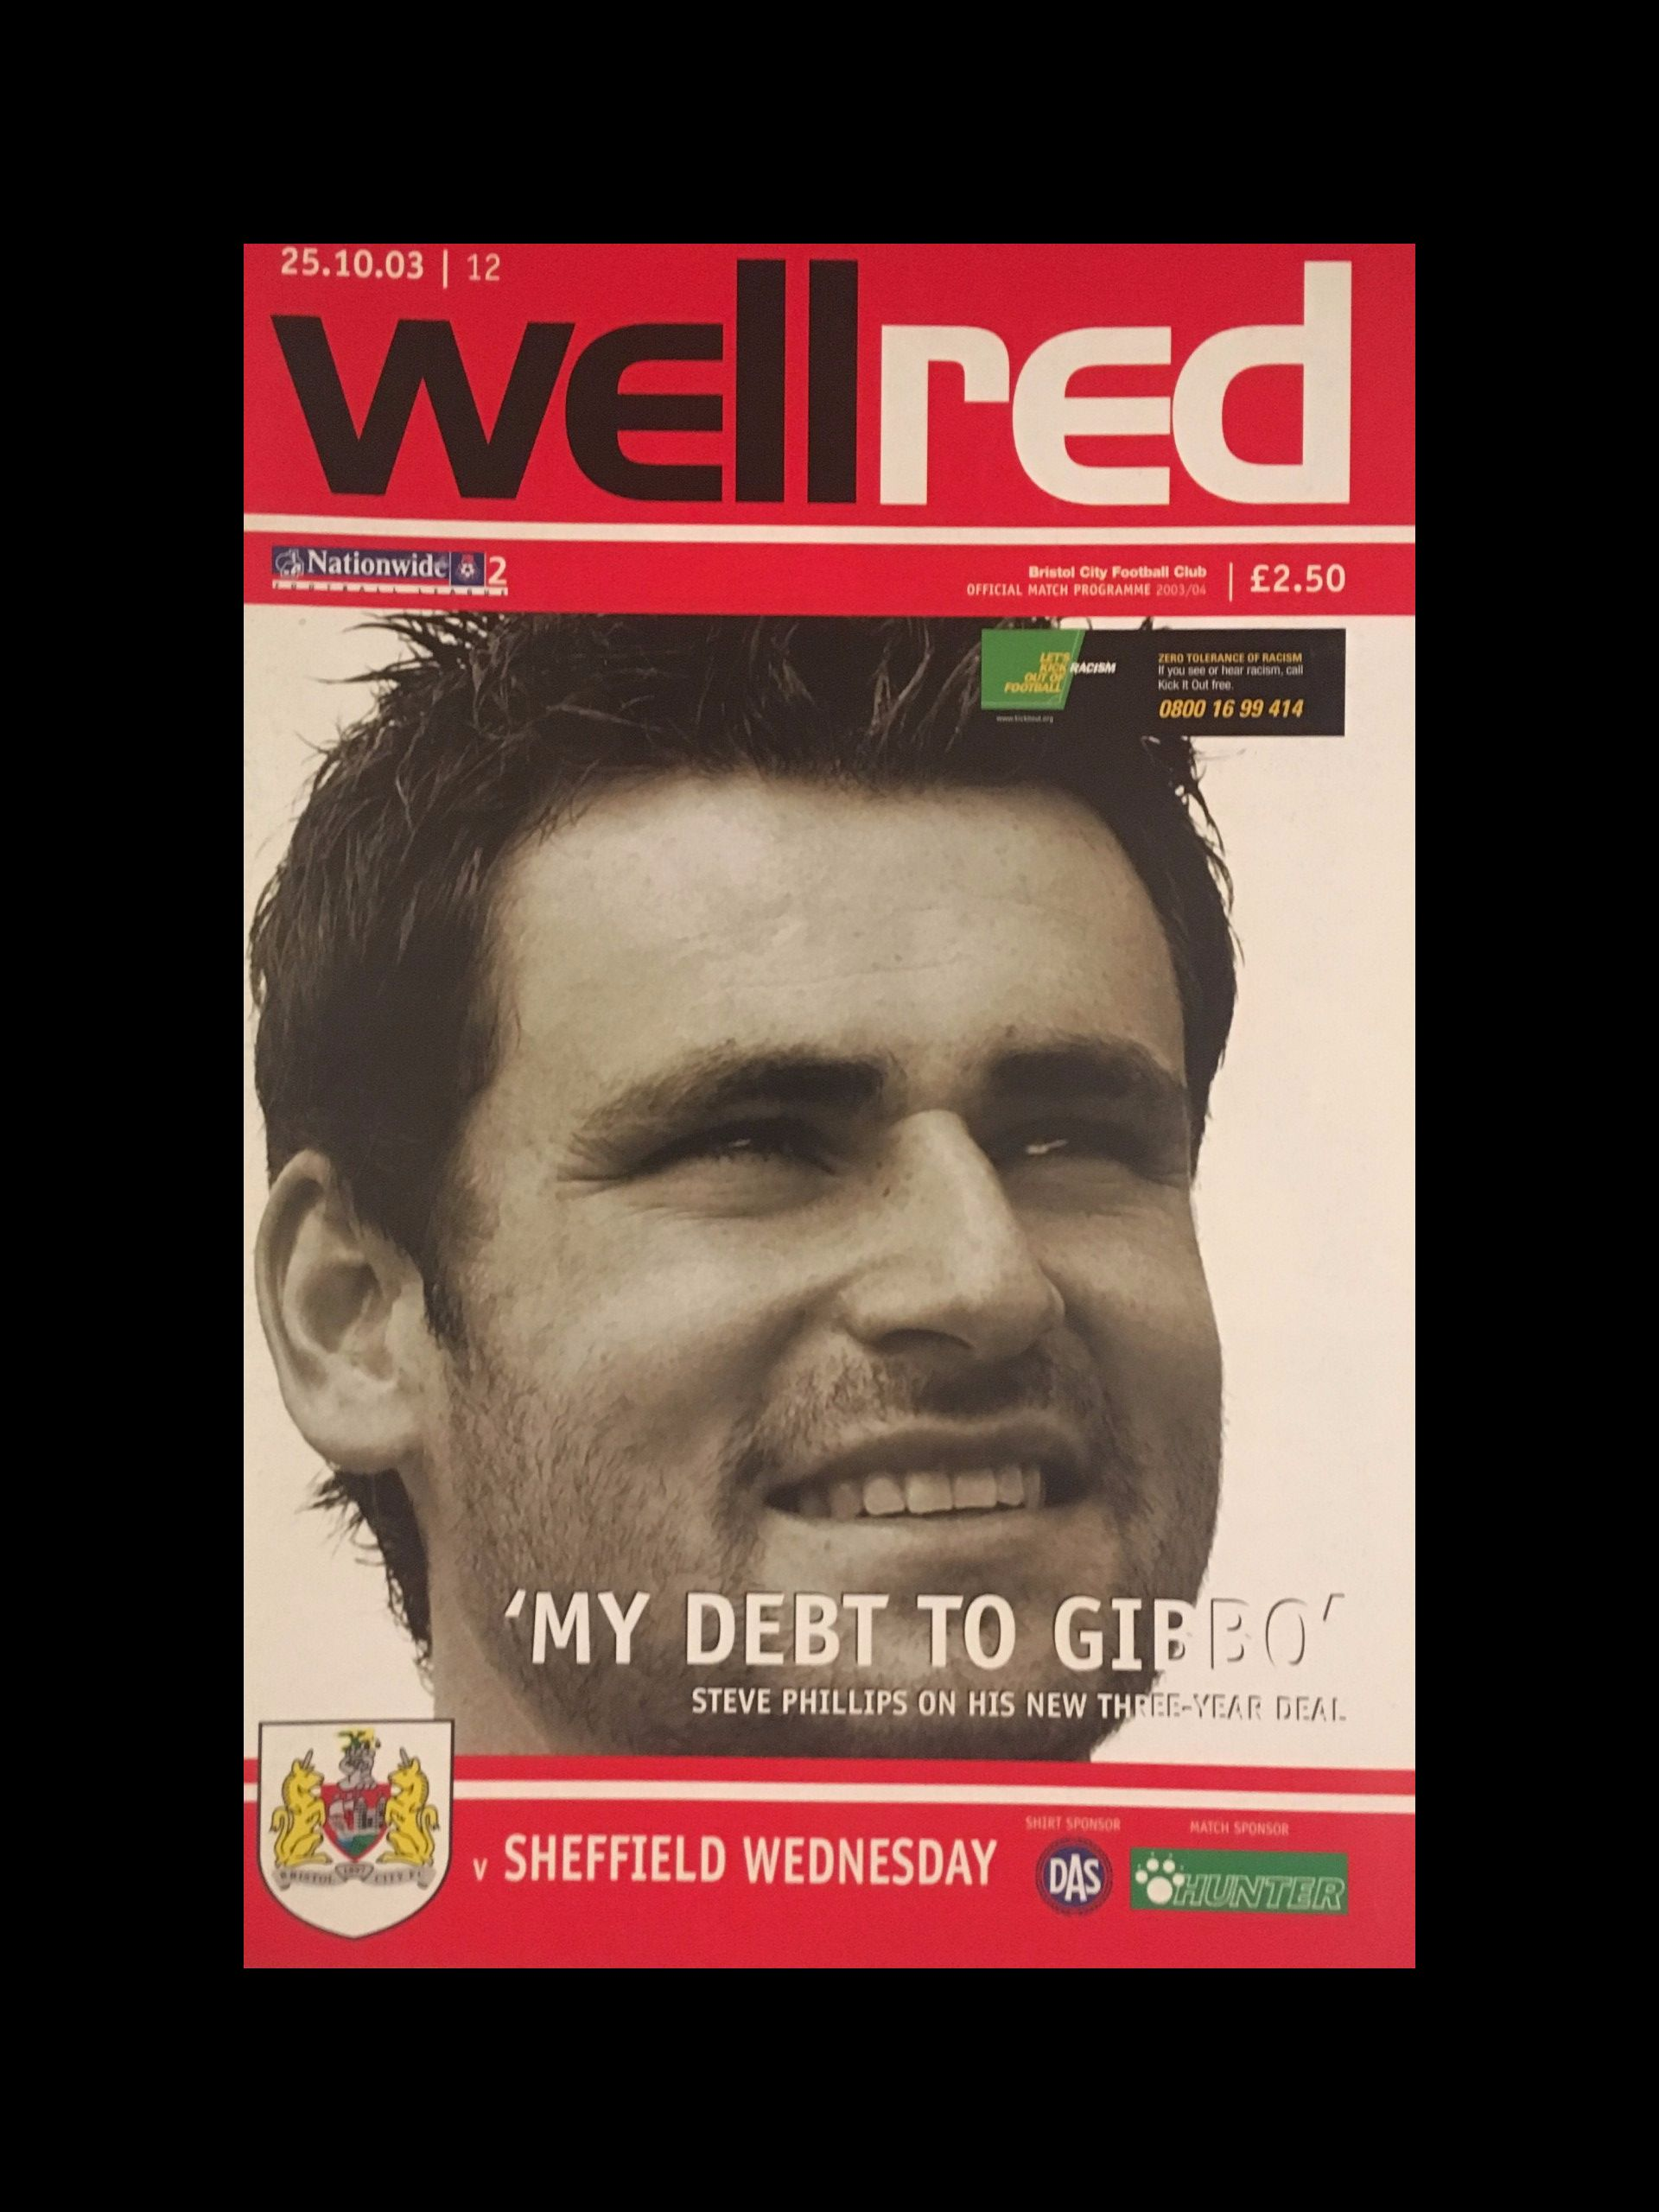 Bristol City v Sheffield Wednesday 25-10-2003 Programme